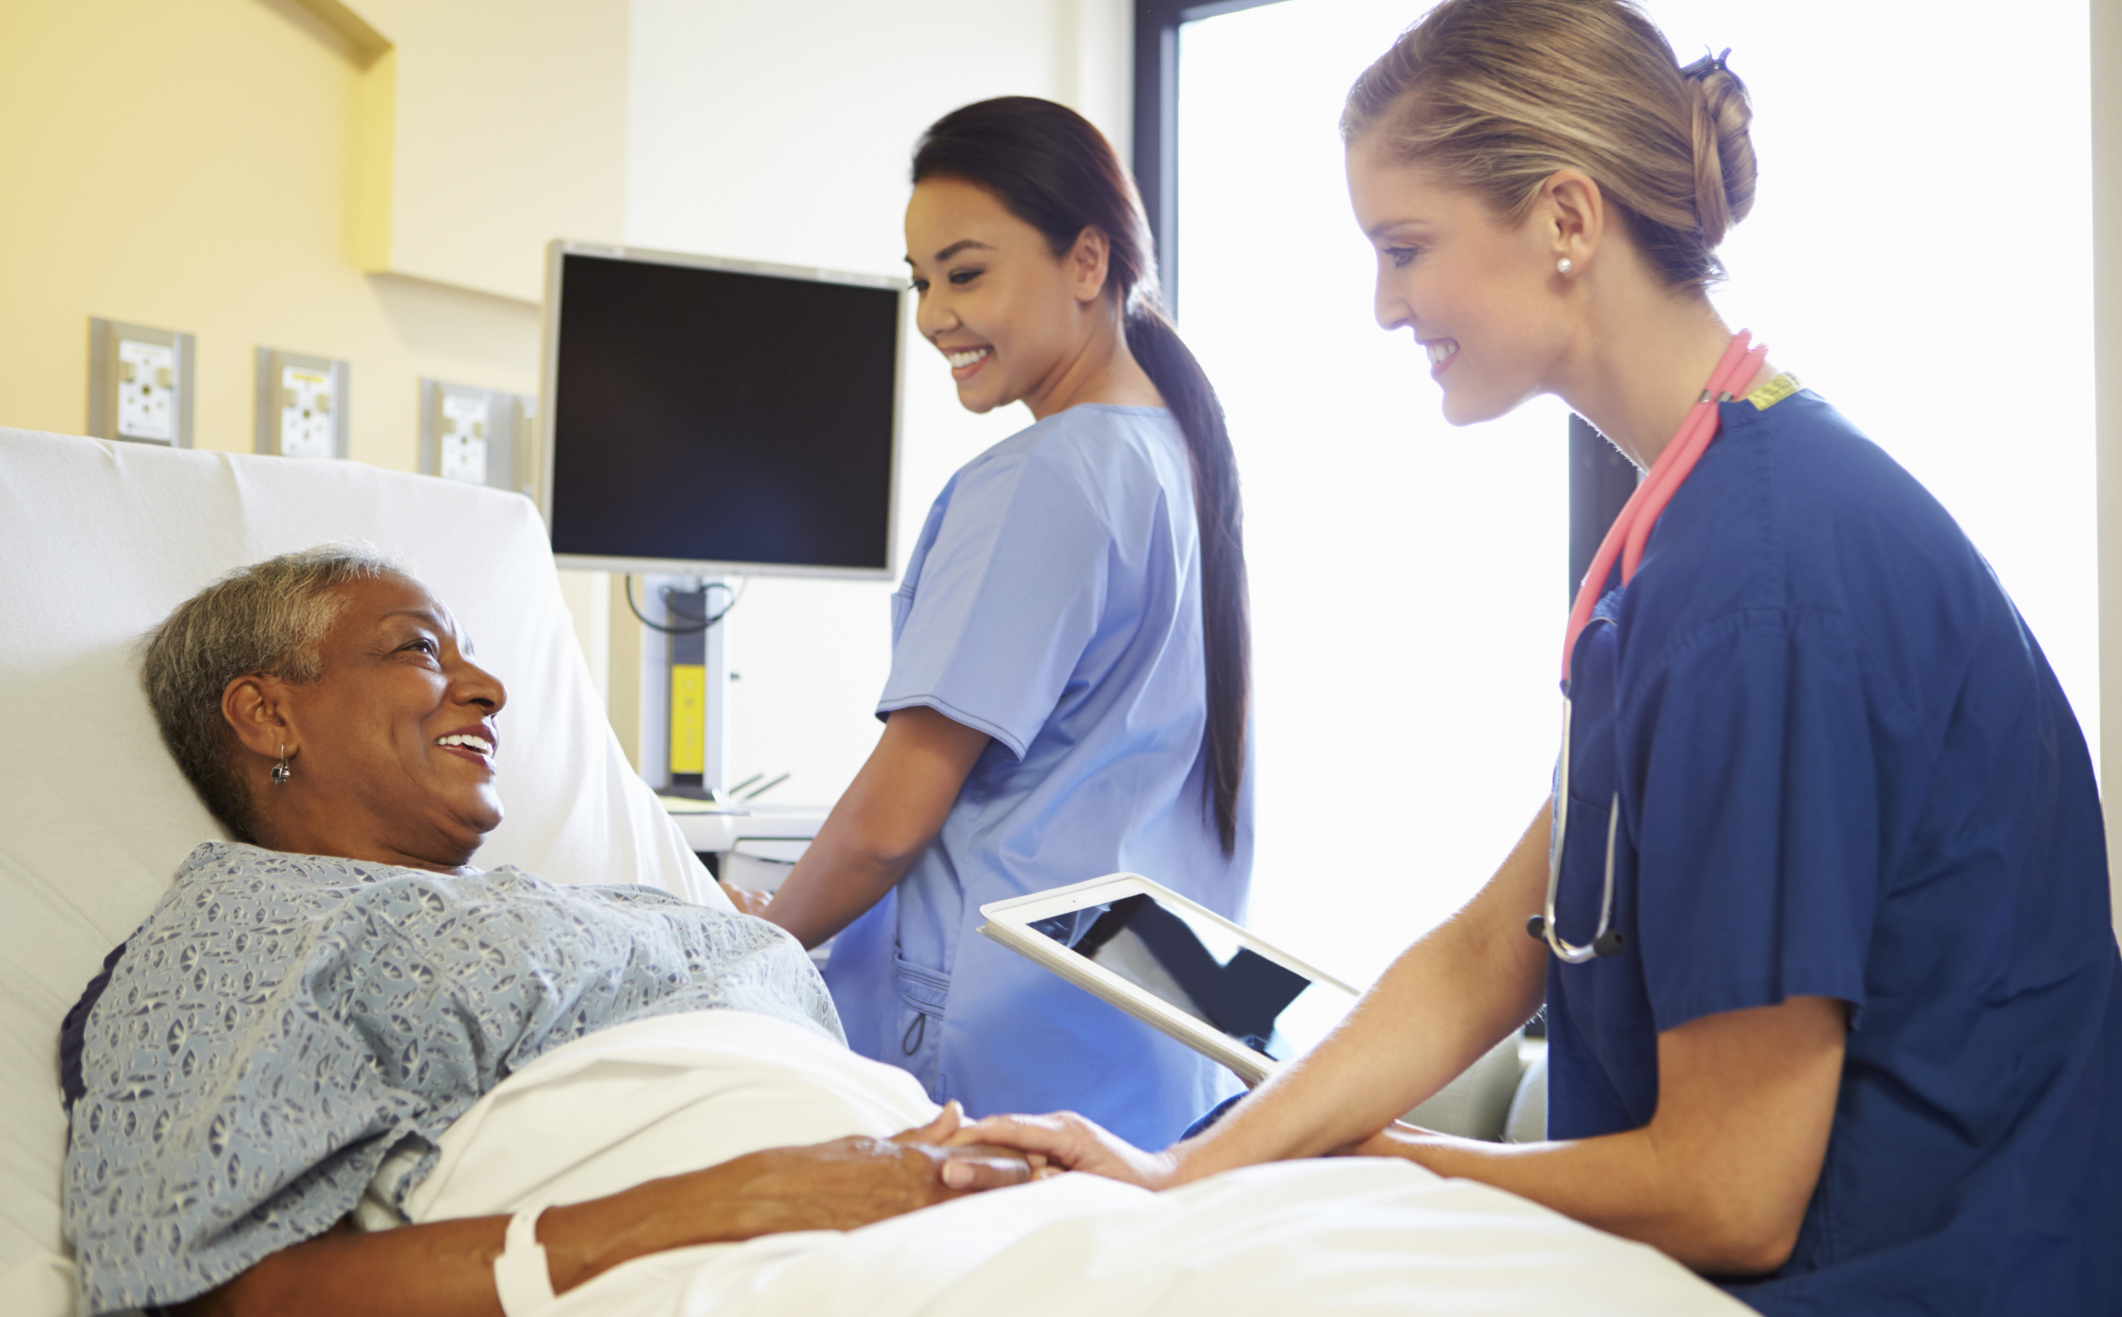 nursing medicine and nurse Health policy report from the new england journal of medicine — expanding the role of advanced nurse medicine and nursing in role of advanced nurse.